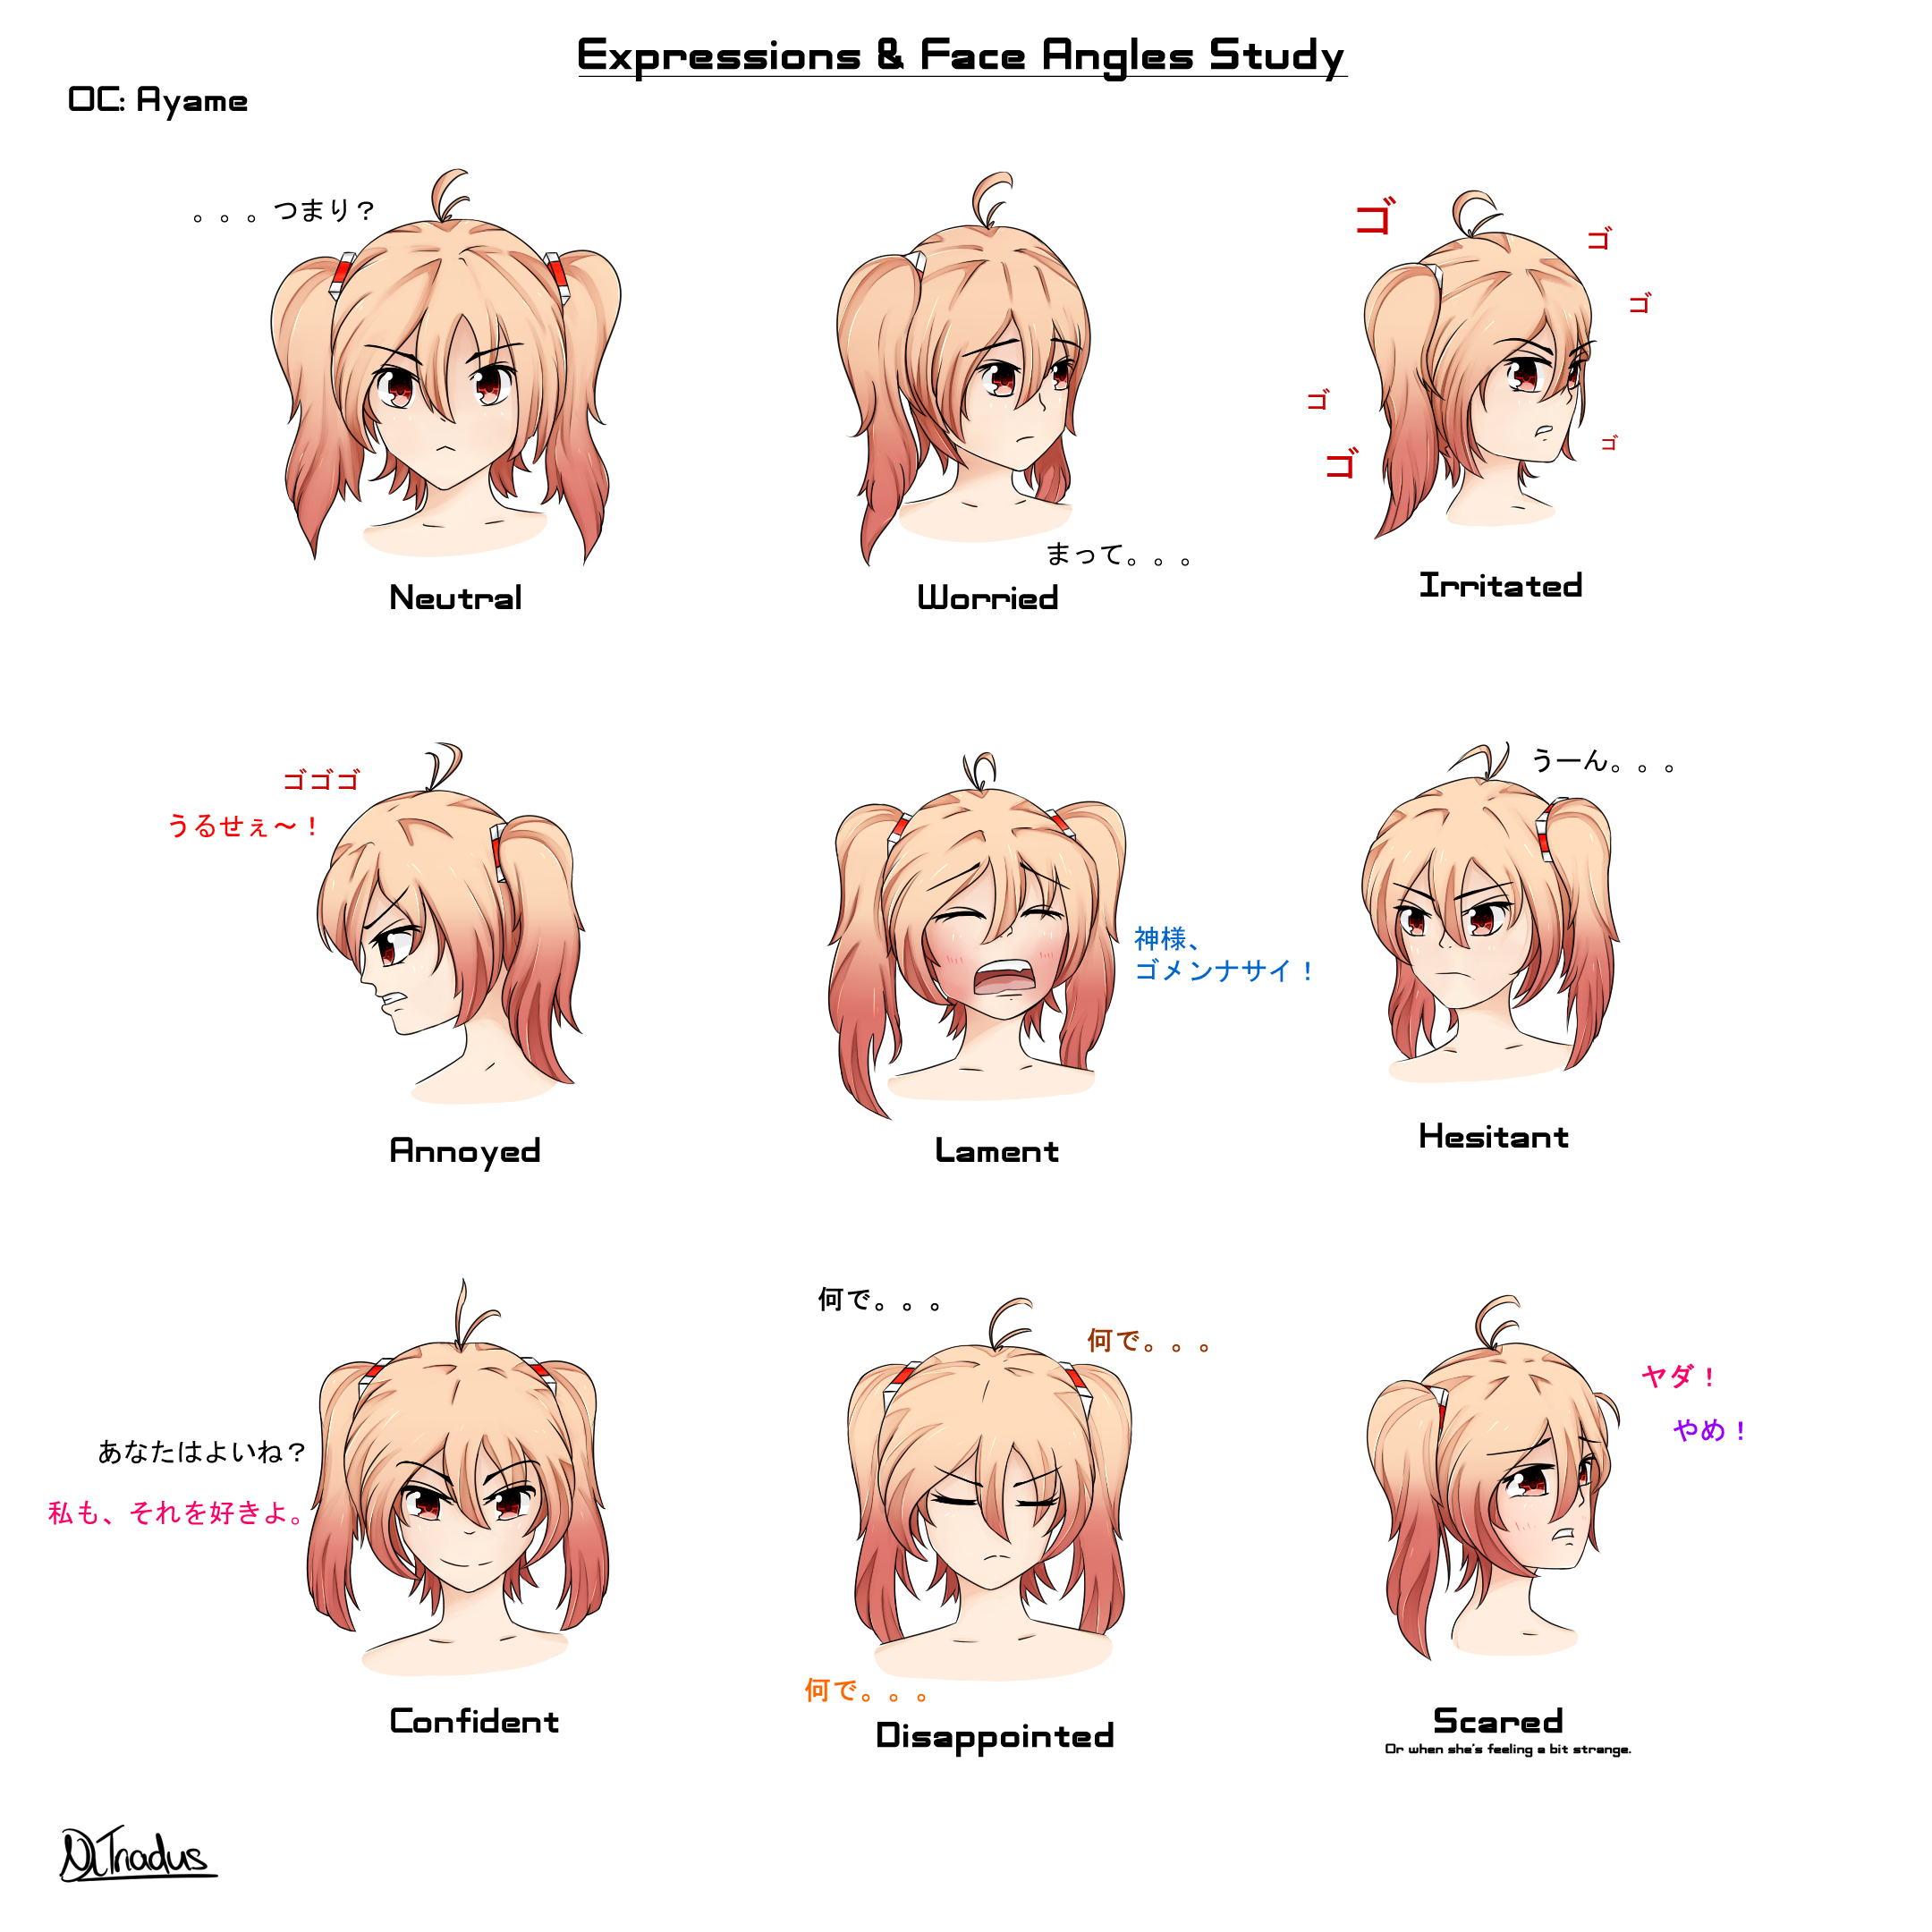 OC Expression and Face Angles Study by NRii on DeviantArt